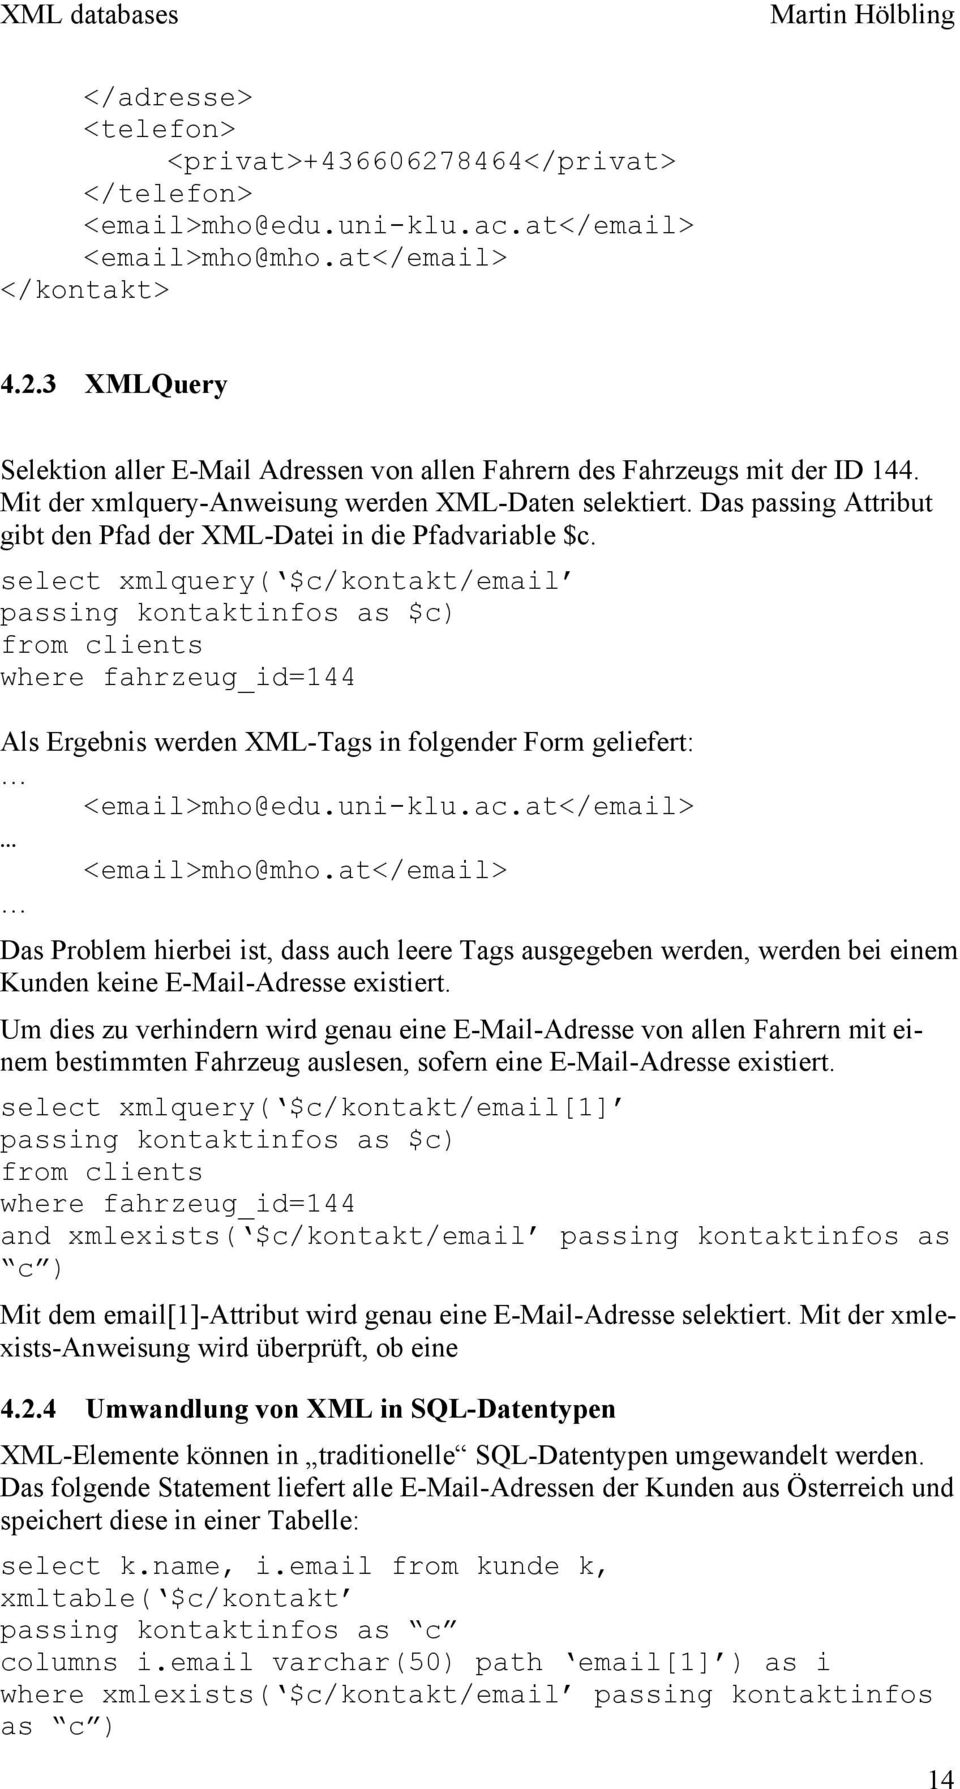 select xmlquery( $c/kontakt/email passing kontaktinfos as $c) from clients where fahrzeug_id=144 Als Ergebnis werden XML-Tags in folgender Form geliefert: <email>mho@edu.uni-klu.ac.